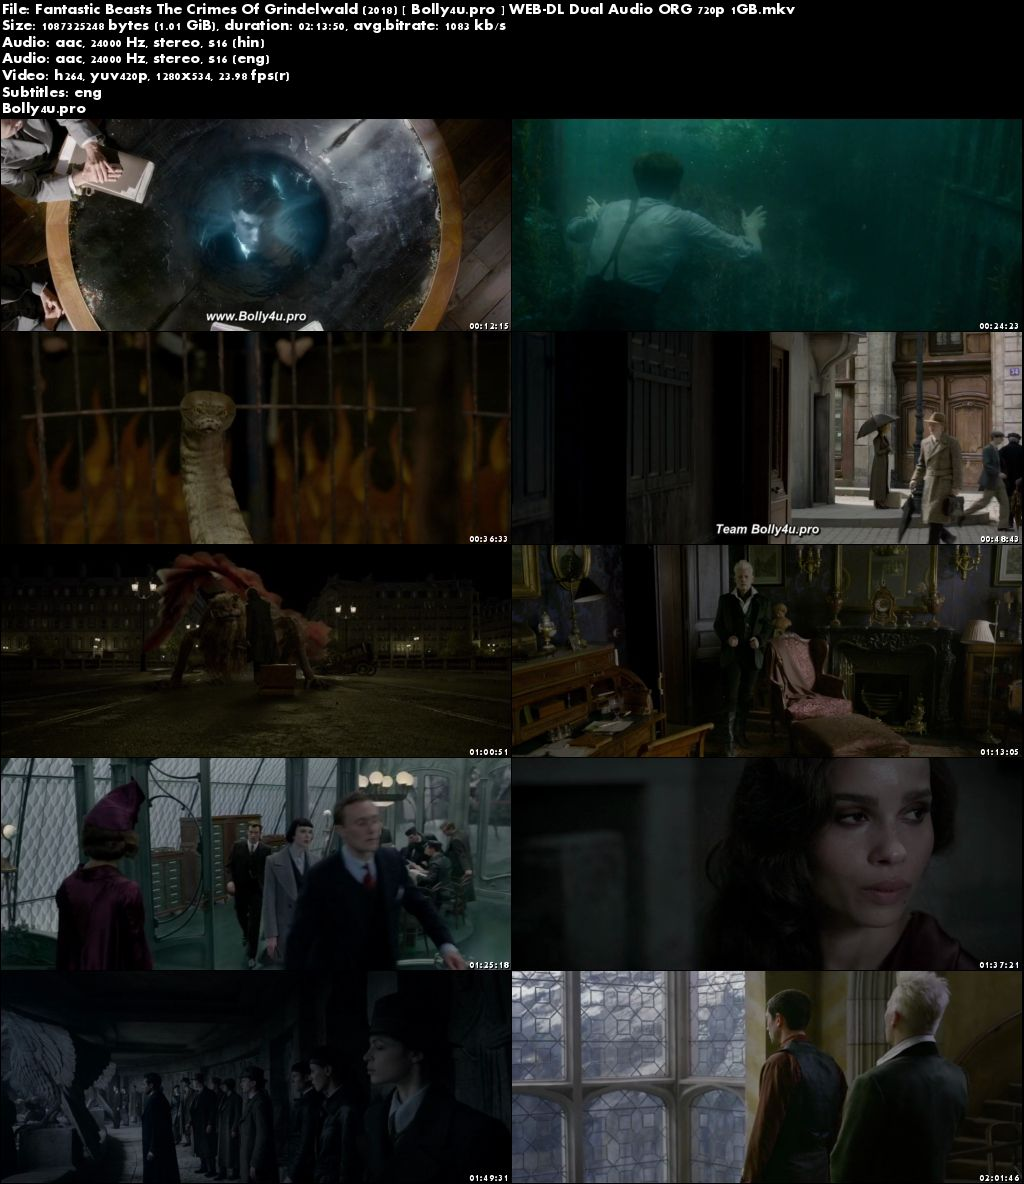 fantastic beasts and where to find them brrip subtitles